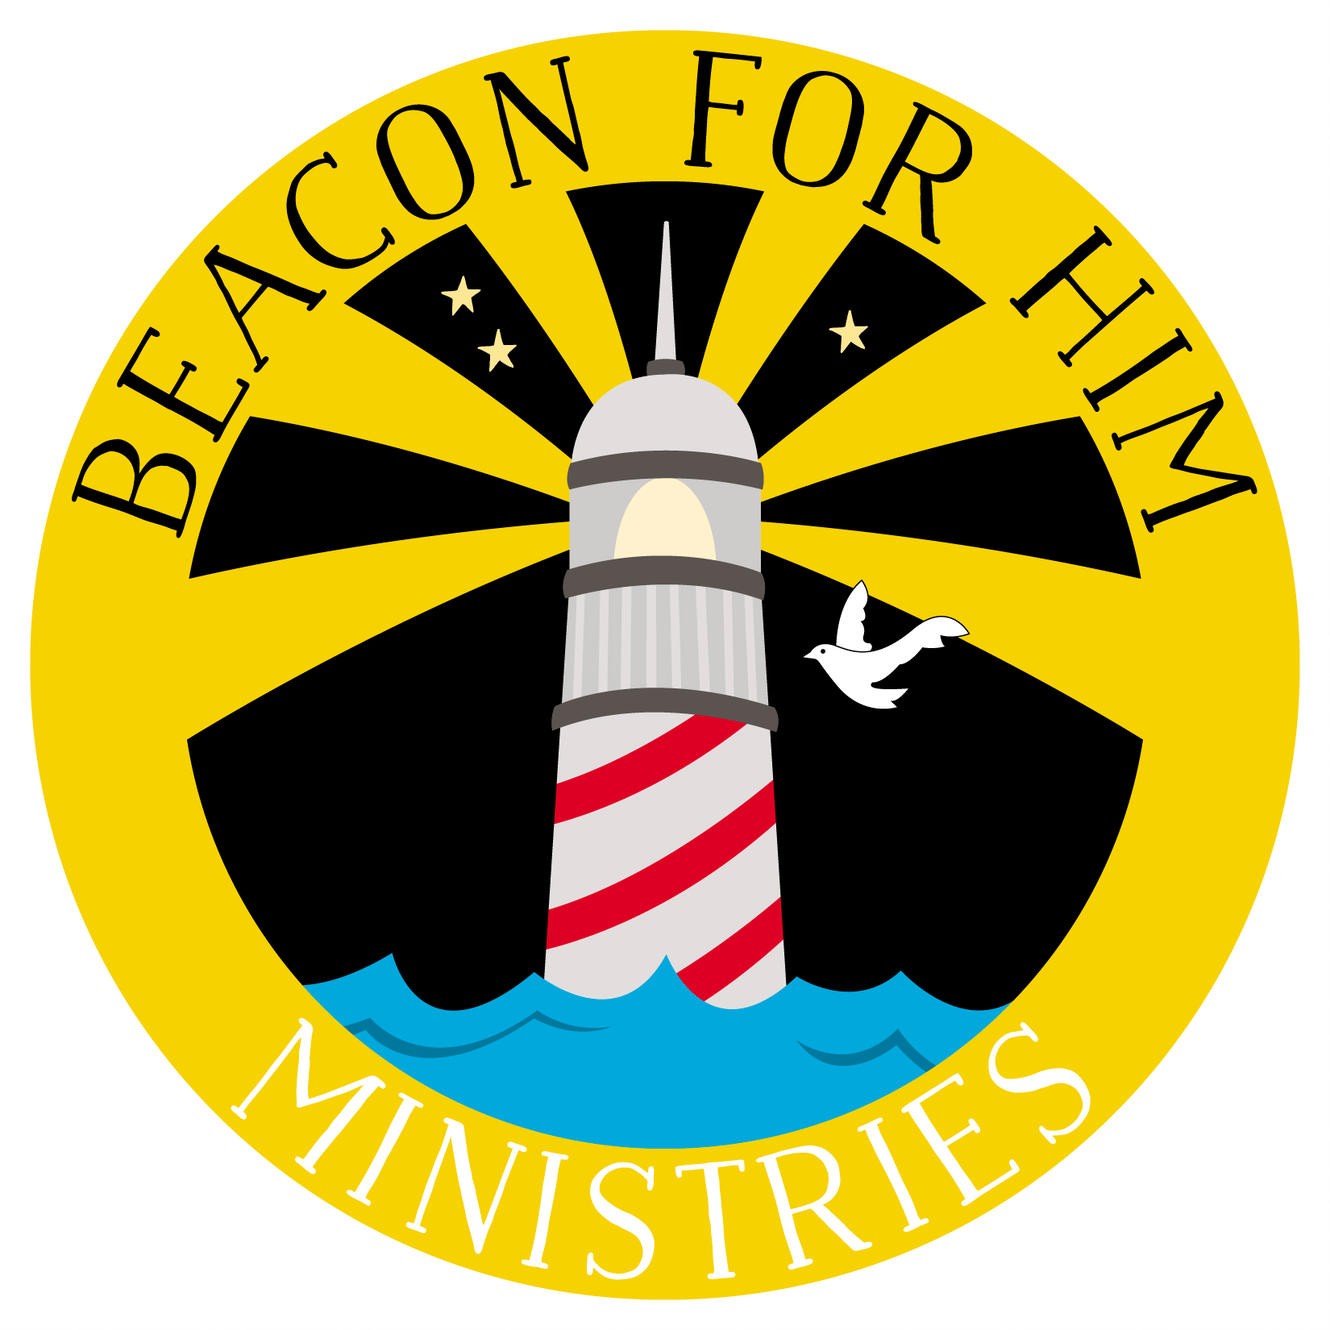 Beacon of hope clipart free freeuse Beacon for Him Ministries, Long Beach Ca Homeless Outreach freeuse